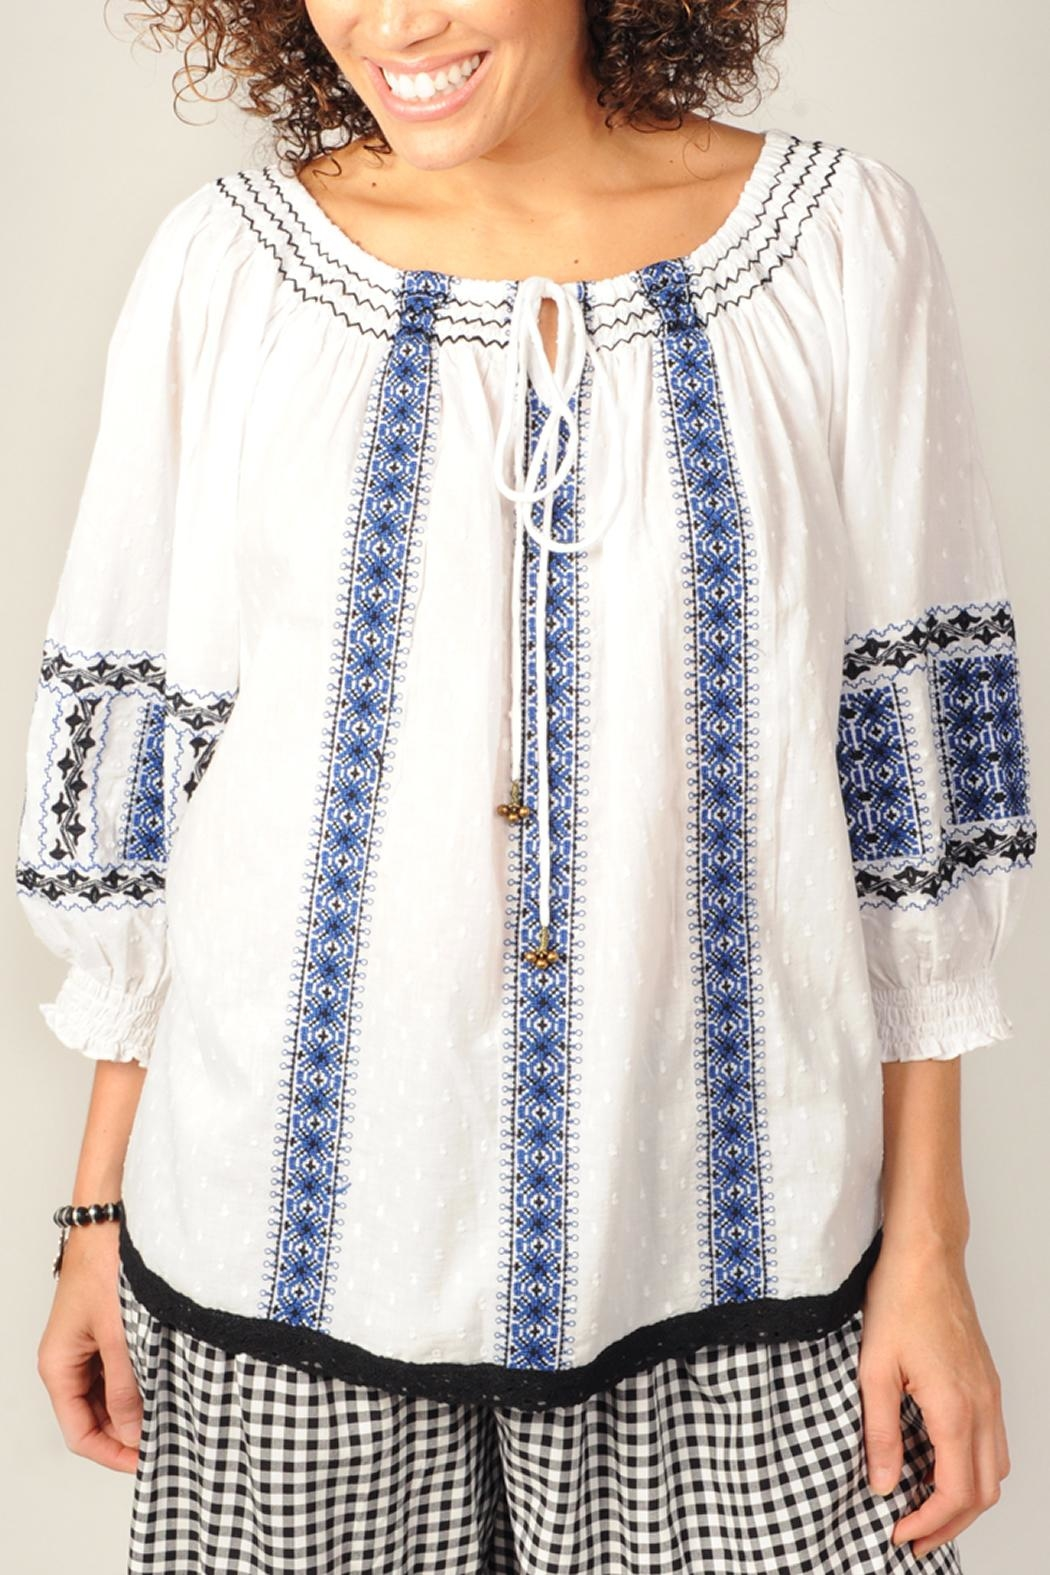 Ivy Jane Embroidered Peasant Top - Main Image